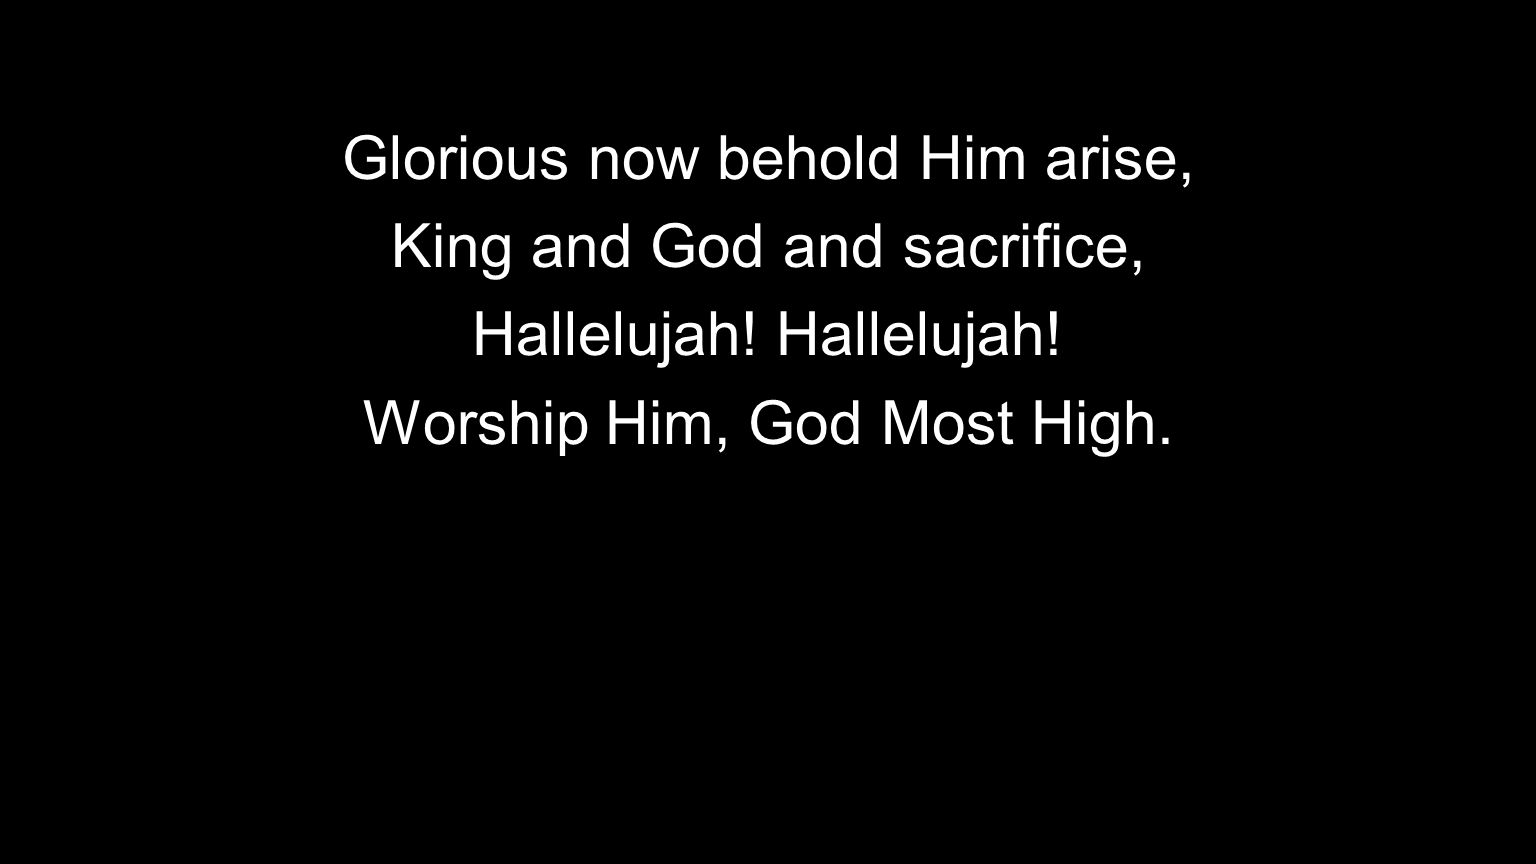 Glorious now behold Him arise, King and God and sacrifice,